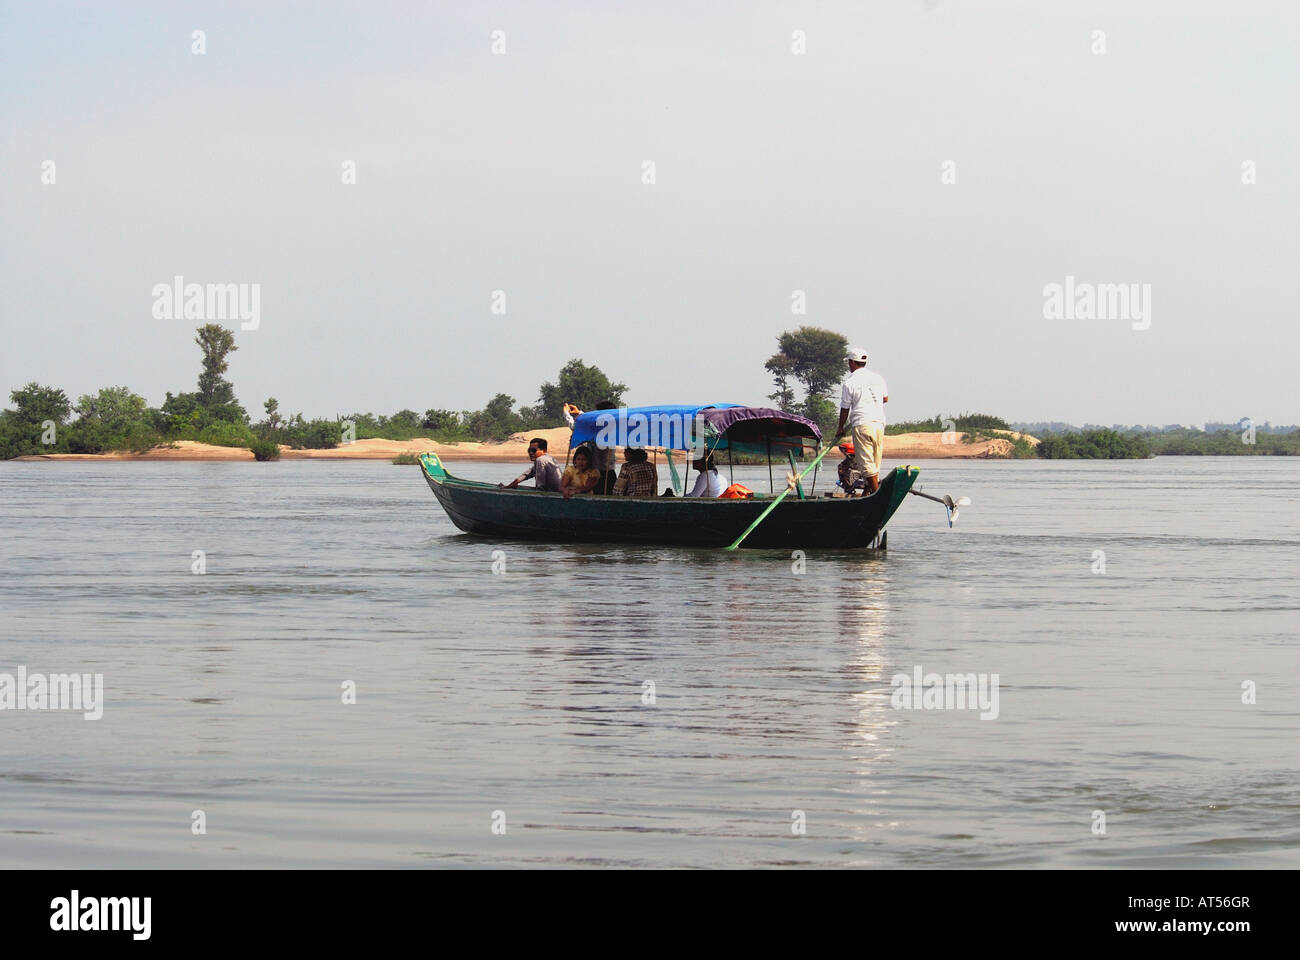 Dolphin watching long-tailed boat on Mekong River,Kratie,Cambodia - Stock Image